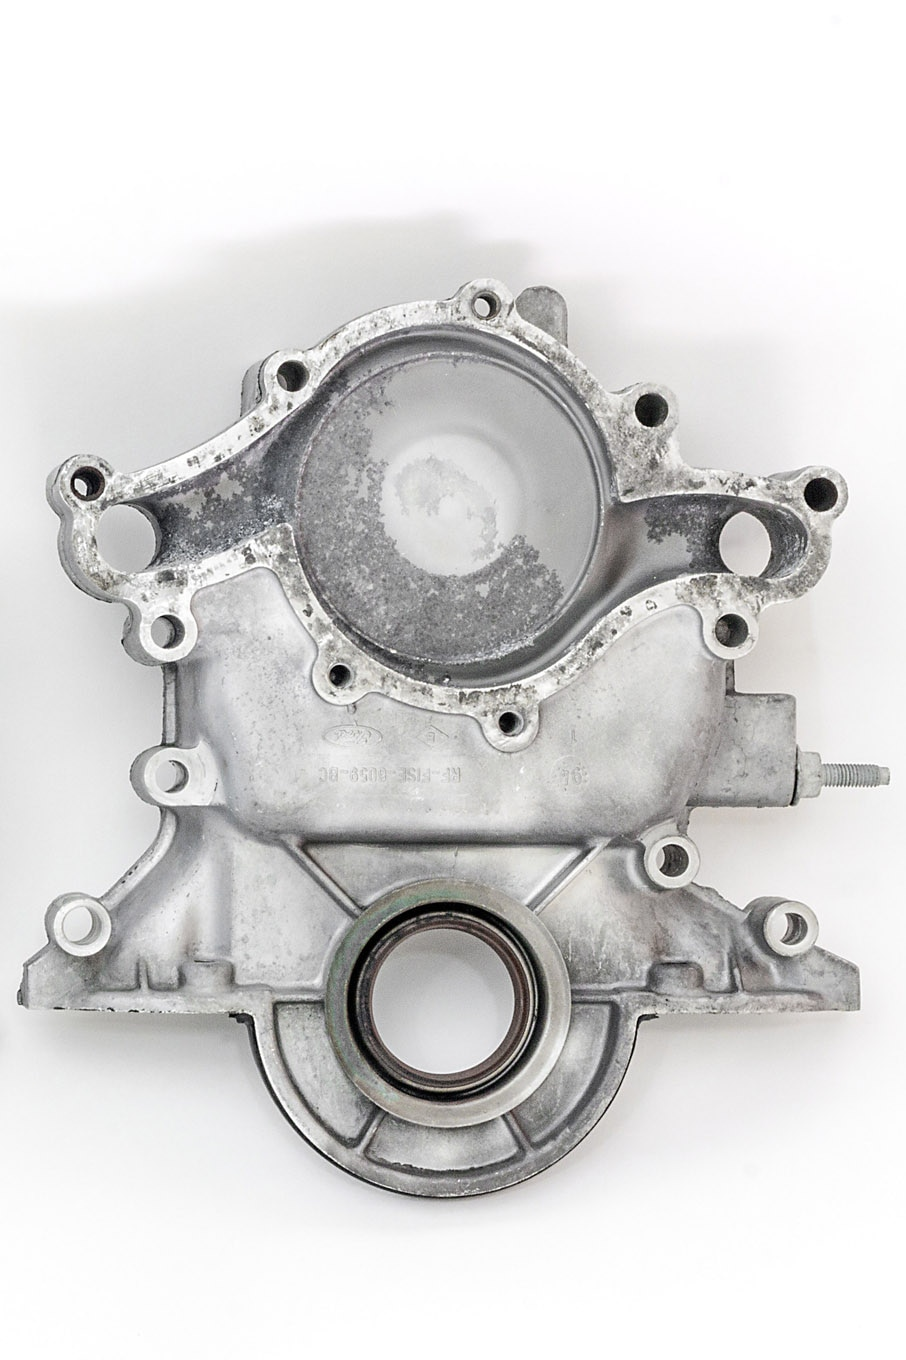 medium resolution of 10 so called explorer water pumps don t have a backing plate instead they bolt directly to this unique timing cover